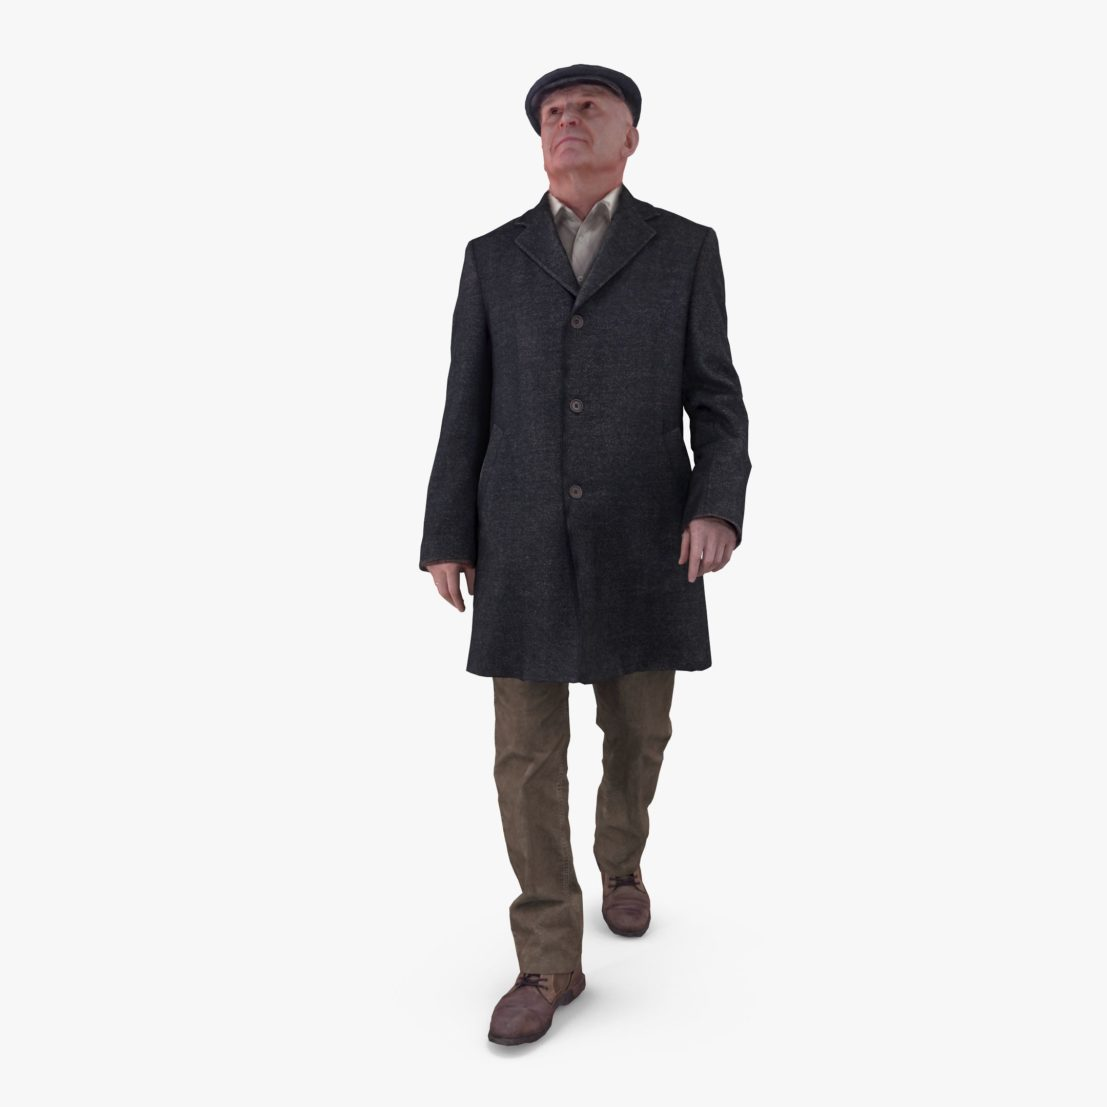 City Oldman 3D Model | 3DTree Scanning Studio